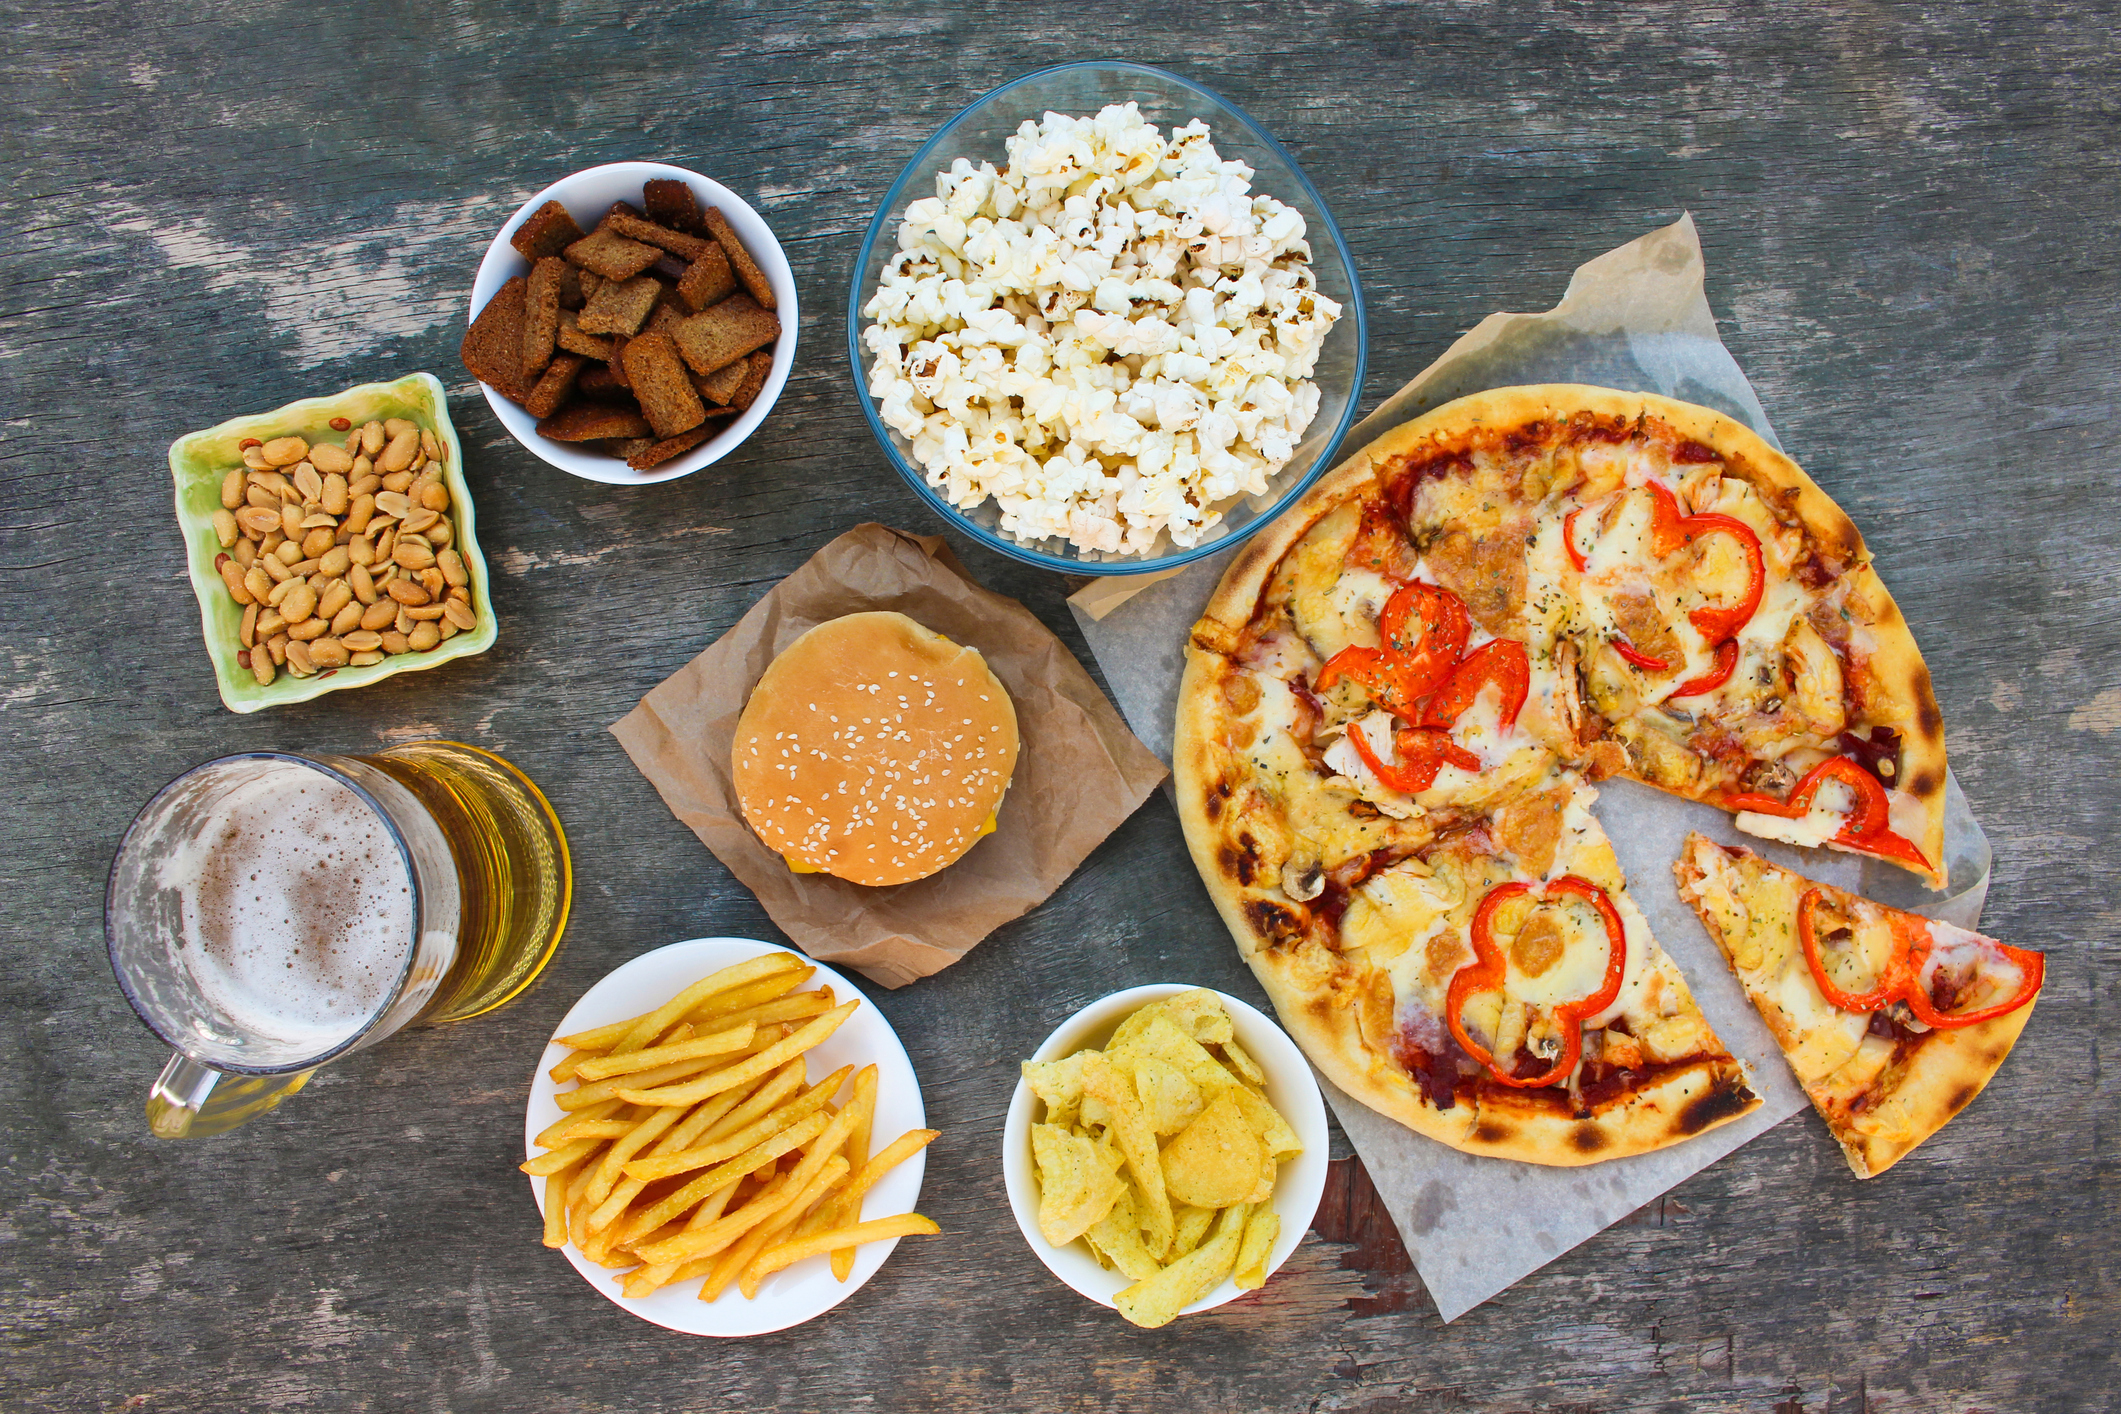 What Makes American Tasty Foods So Delicious?